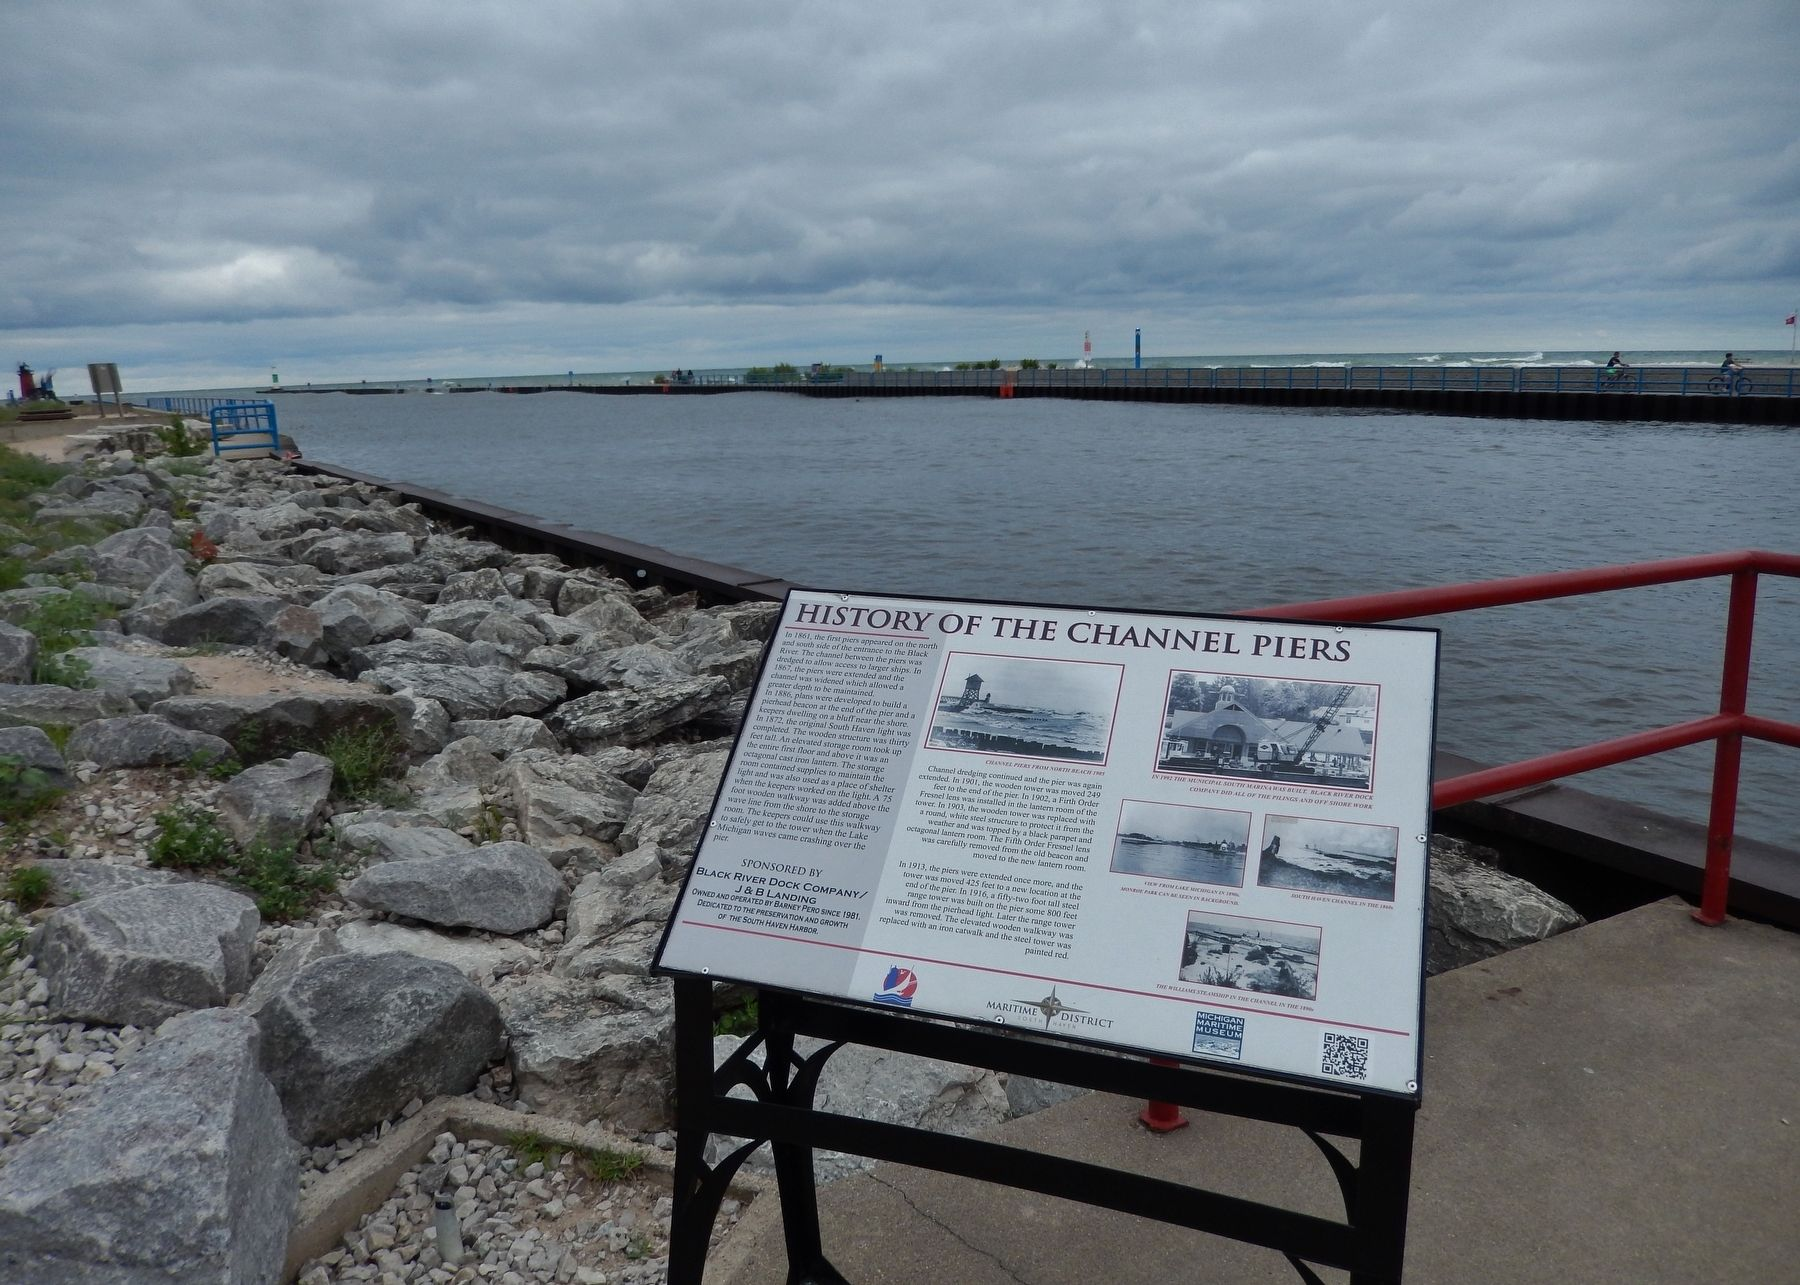 History of the Channel Piers Marker (<i>wide view; overlooking the Black River channel</i>) image. Click for full size.